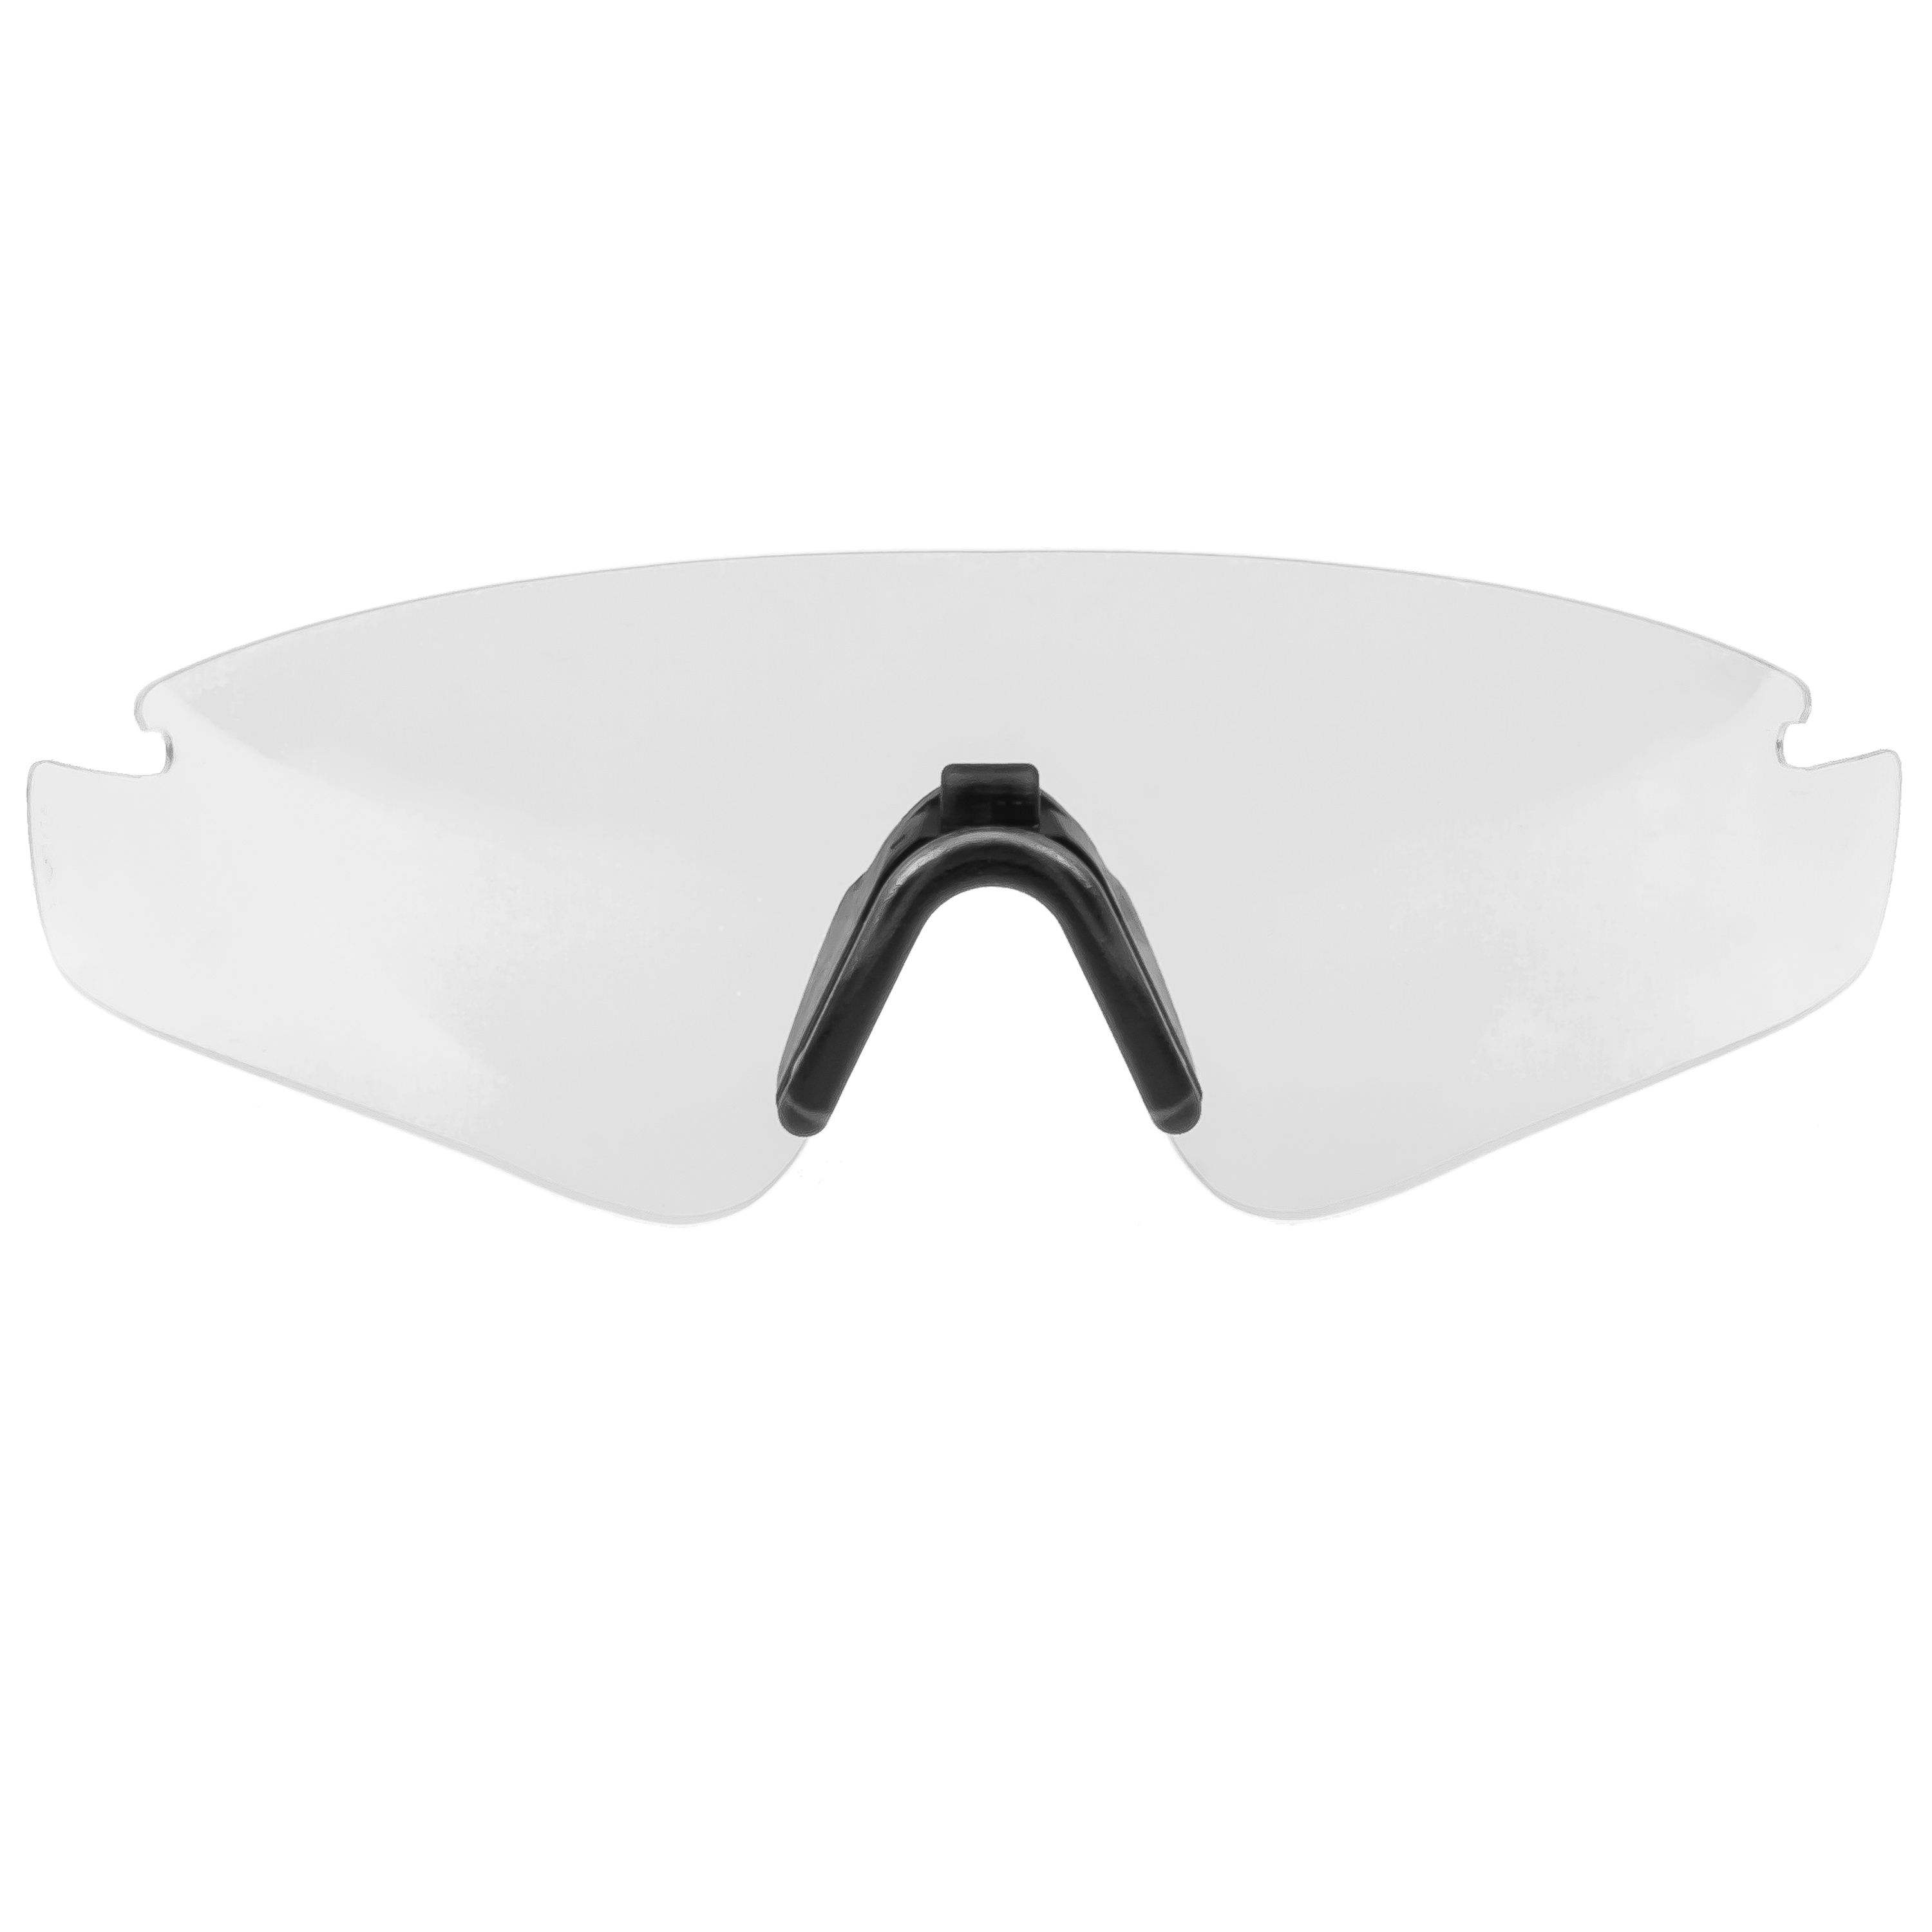 Replacement Lens Revision Sawfly Max-Wrap large clear